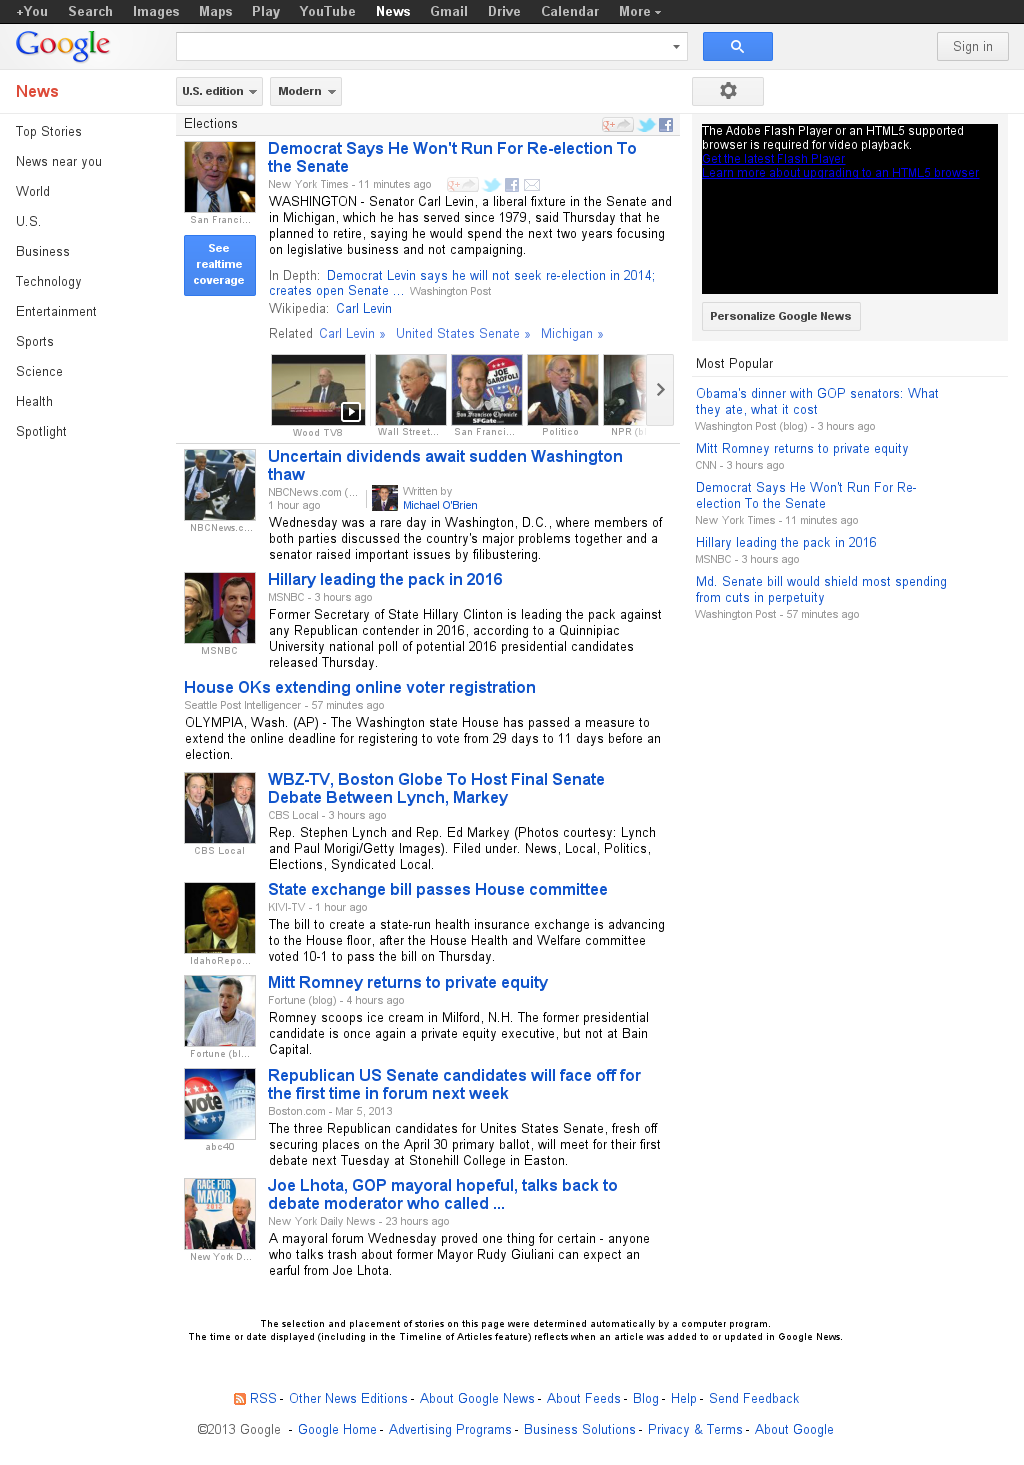 Google News: Elections at Friday March 8, 2013, 2:07 a.m. UTC